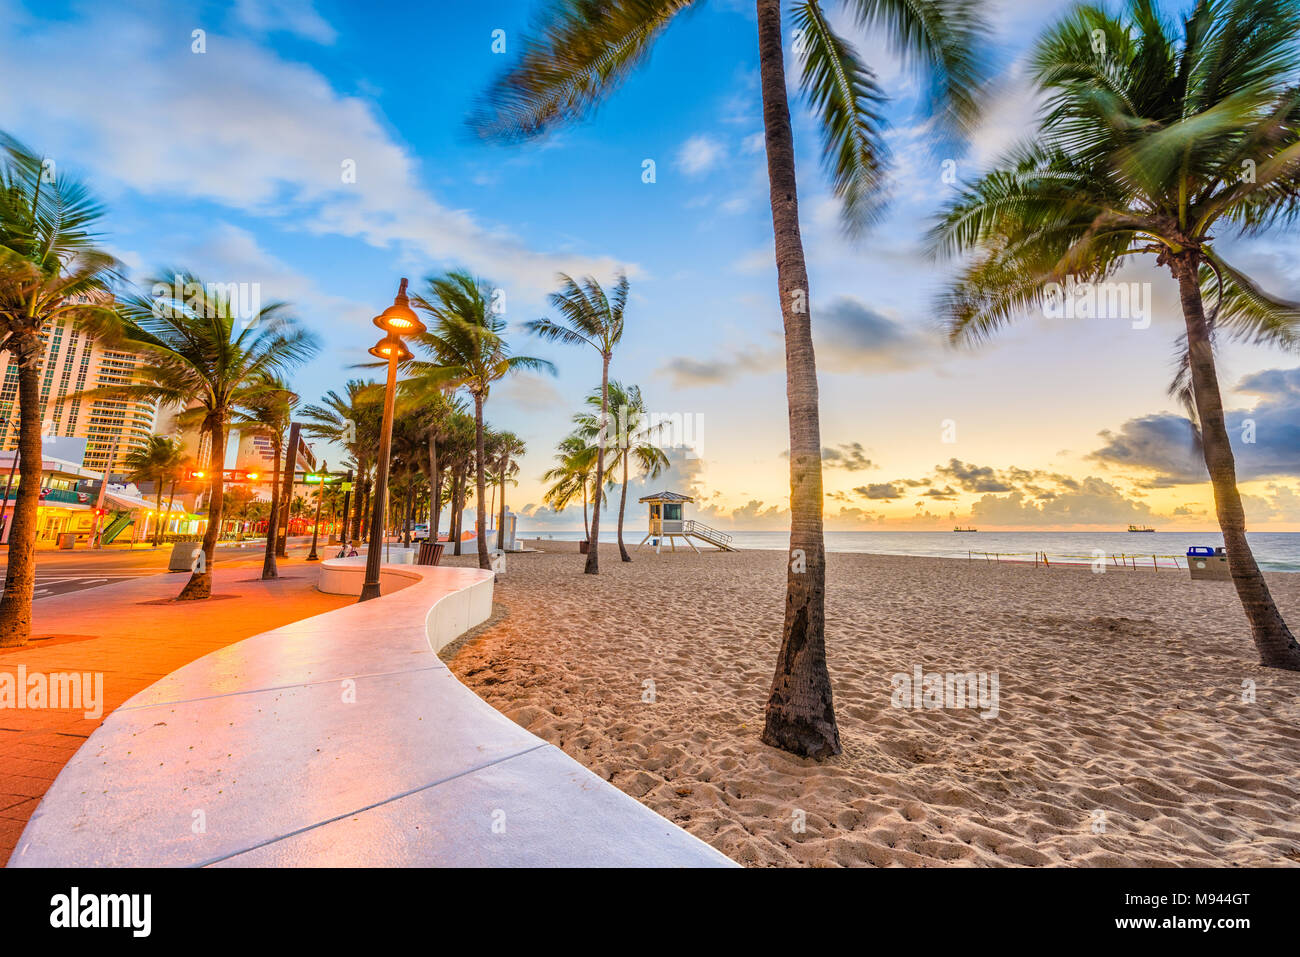 Ft. Lauderdale Beach, Florida, USA à Las Olas Blvd. Photo Stock